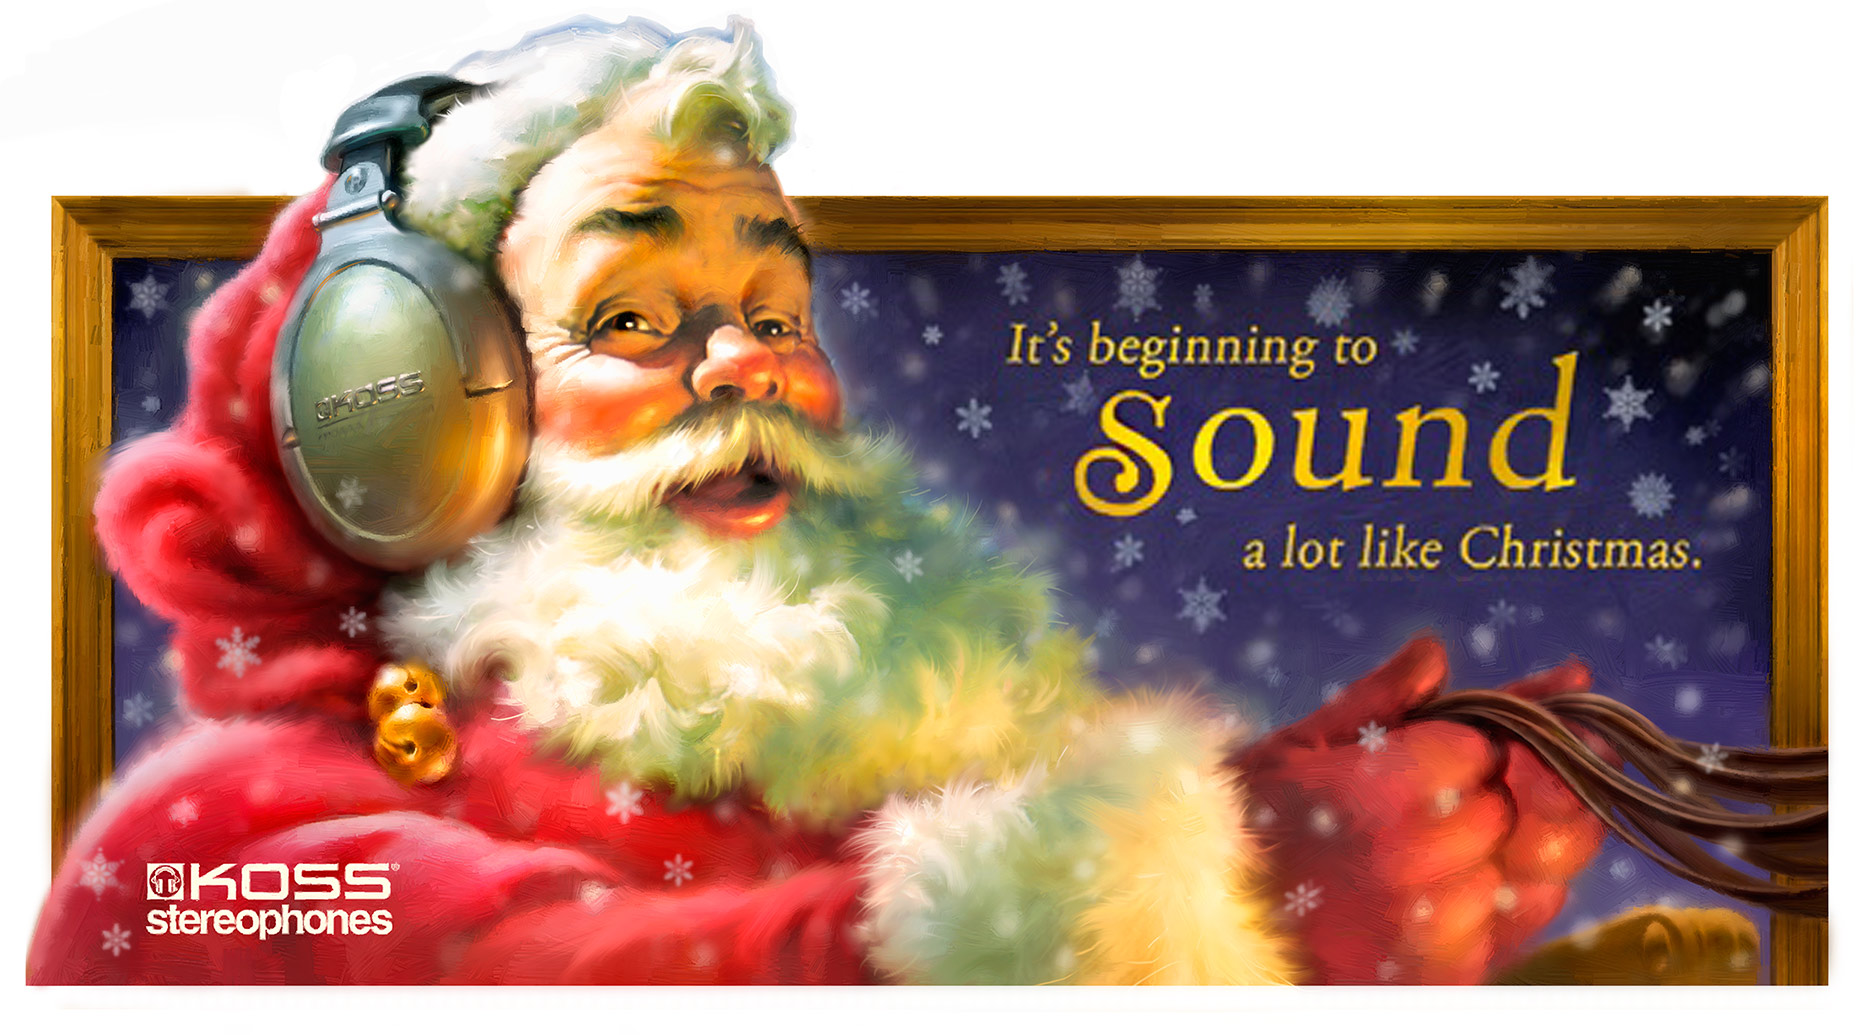 Matt_Zumbo_People_products_Santa_Christmas_billboard.jpg